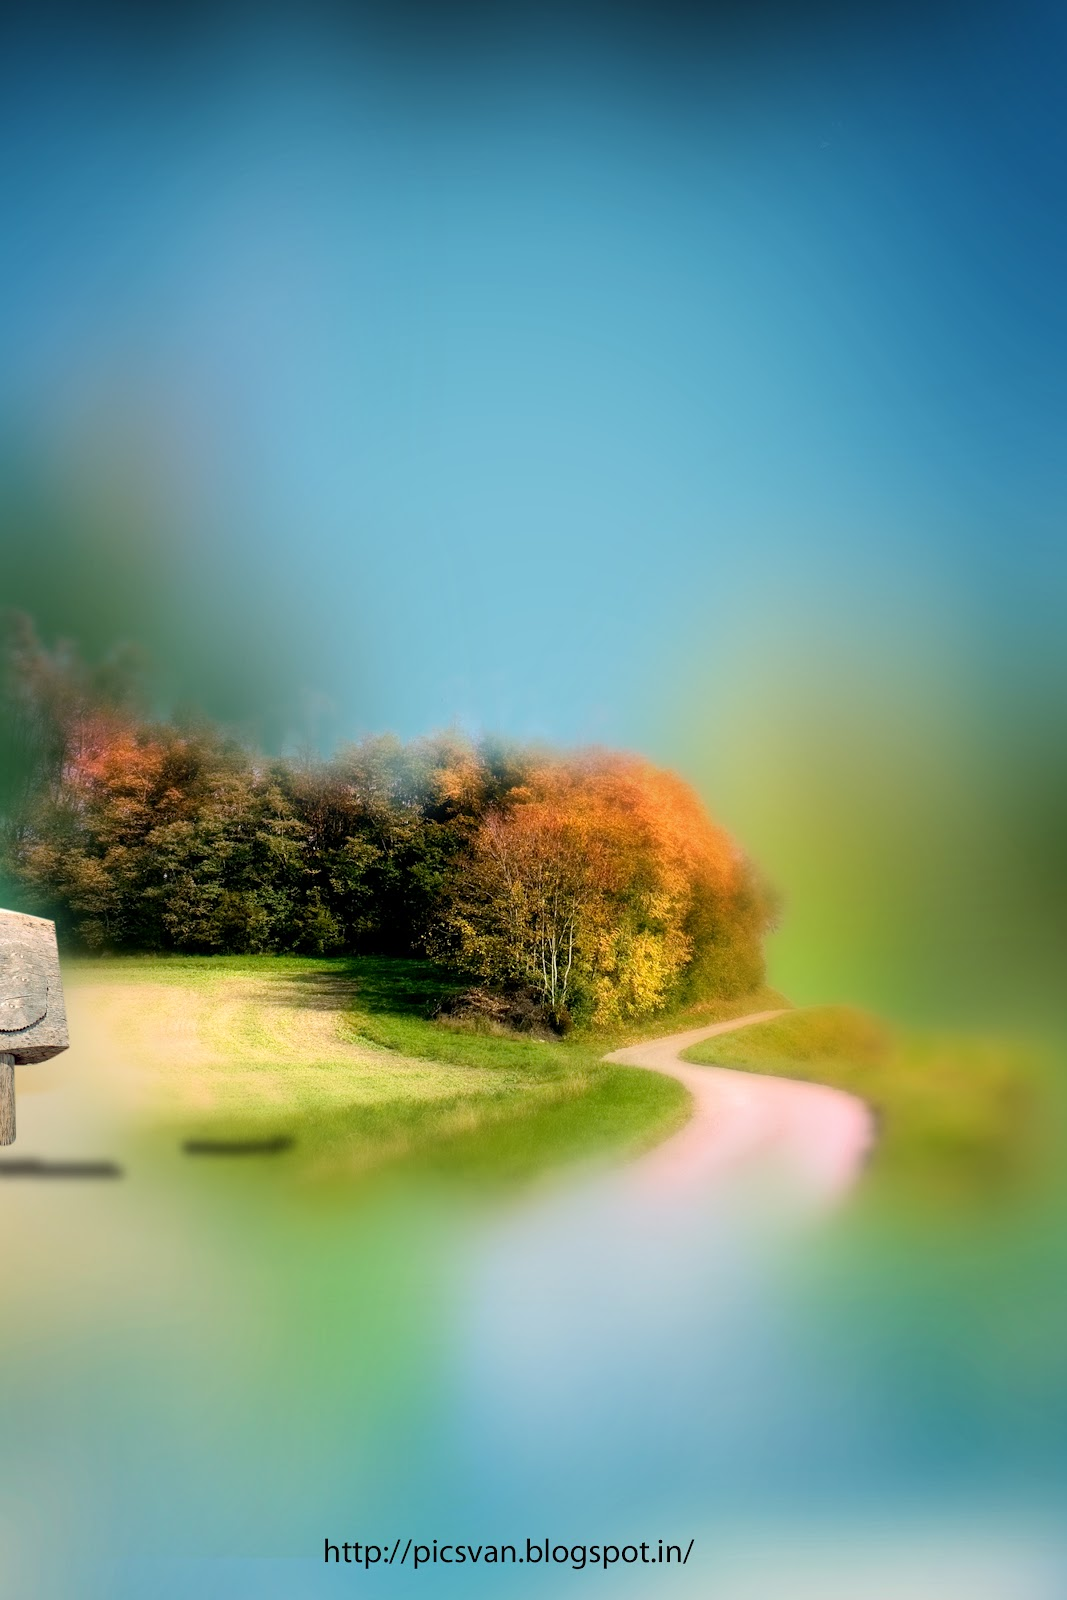 ... Beautiful Album Photoshop Background Photo Images & Pictures - Becuo